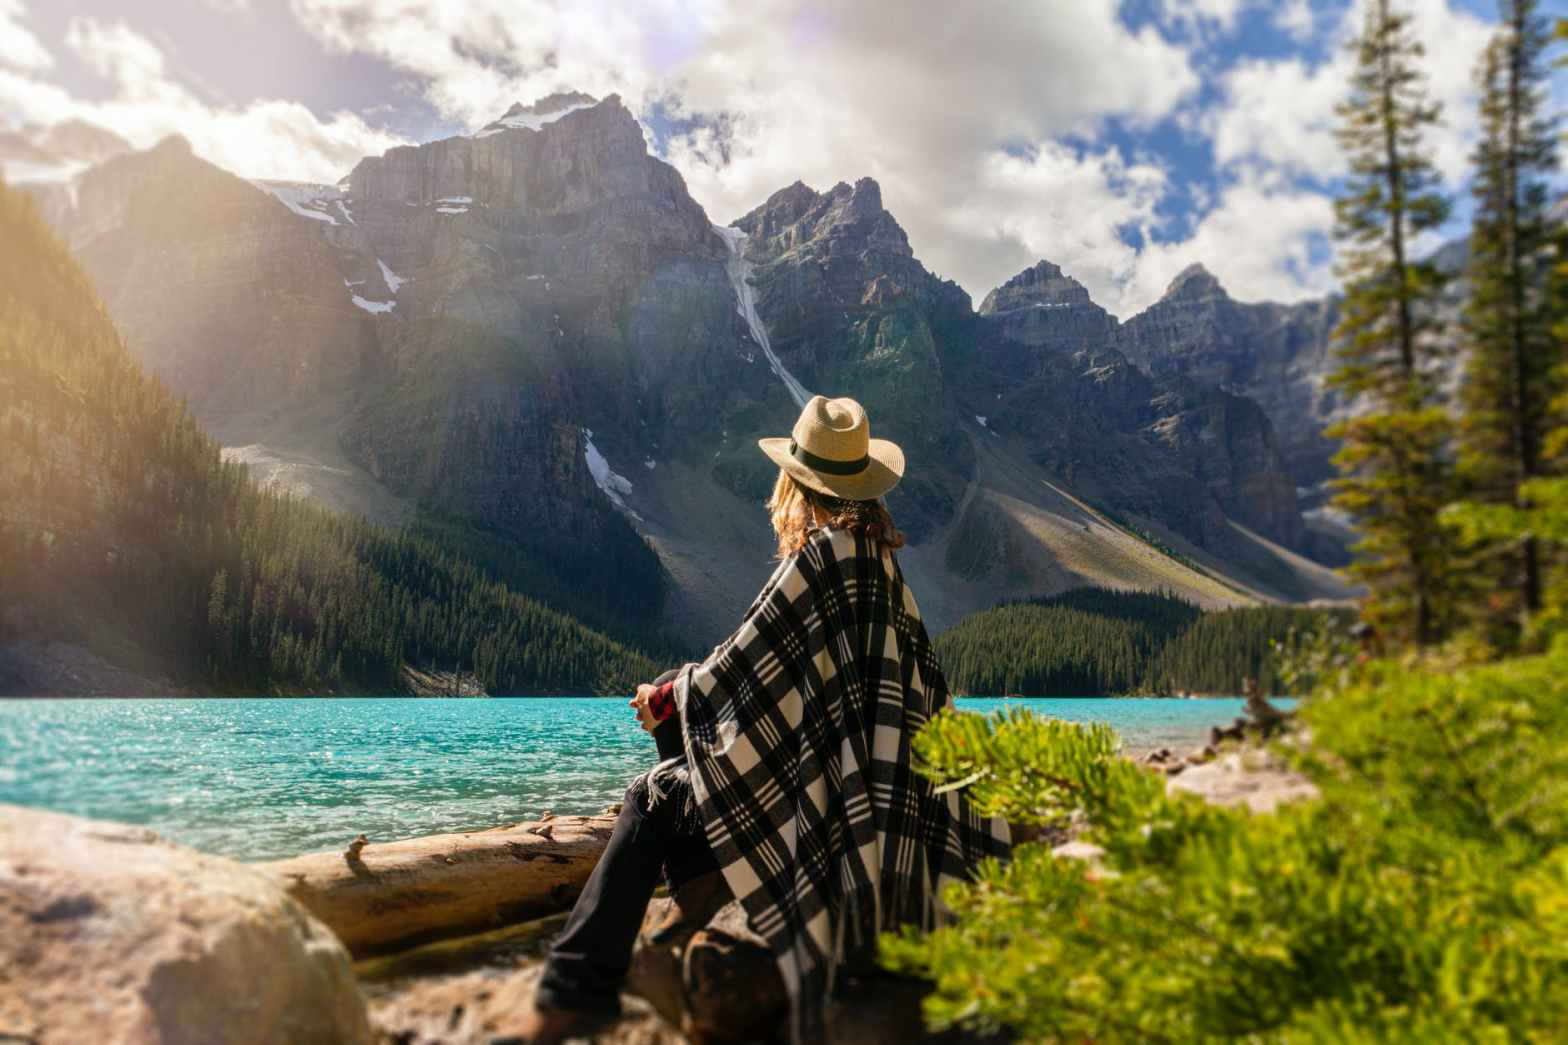 become secure - a woman looks at a scenic view, possibly inspired by the security of the mountains.